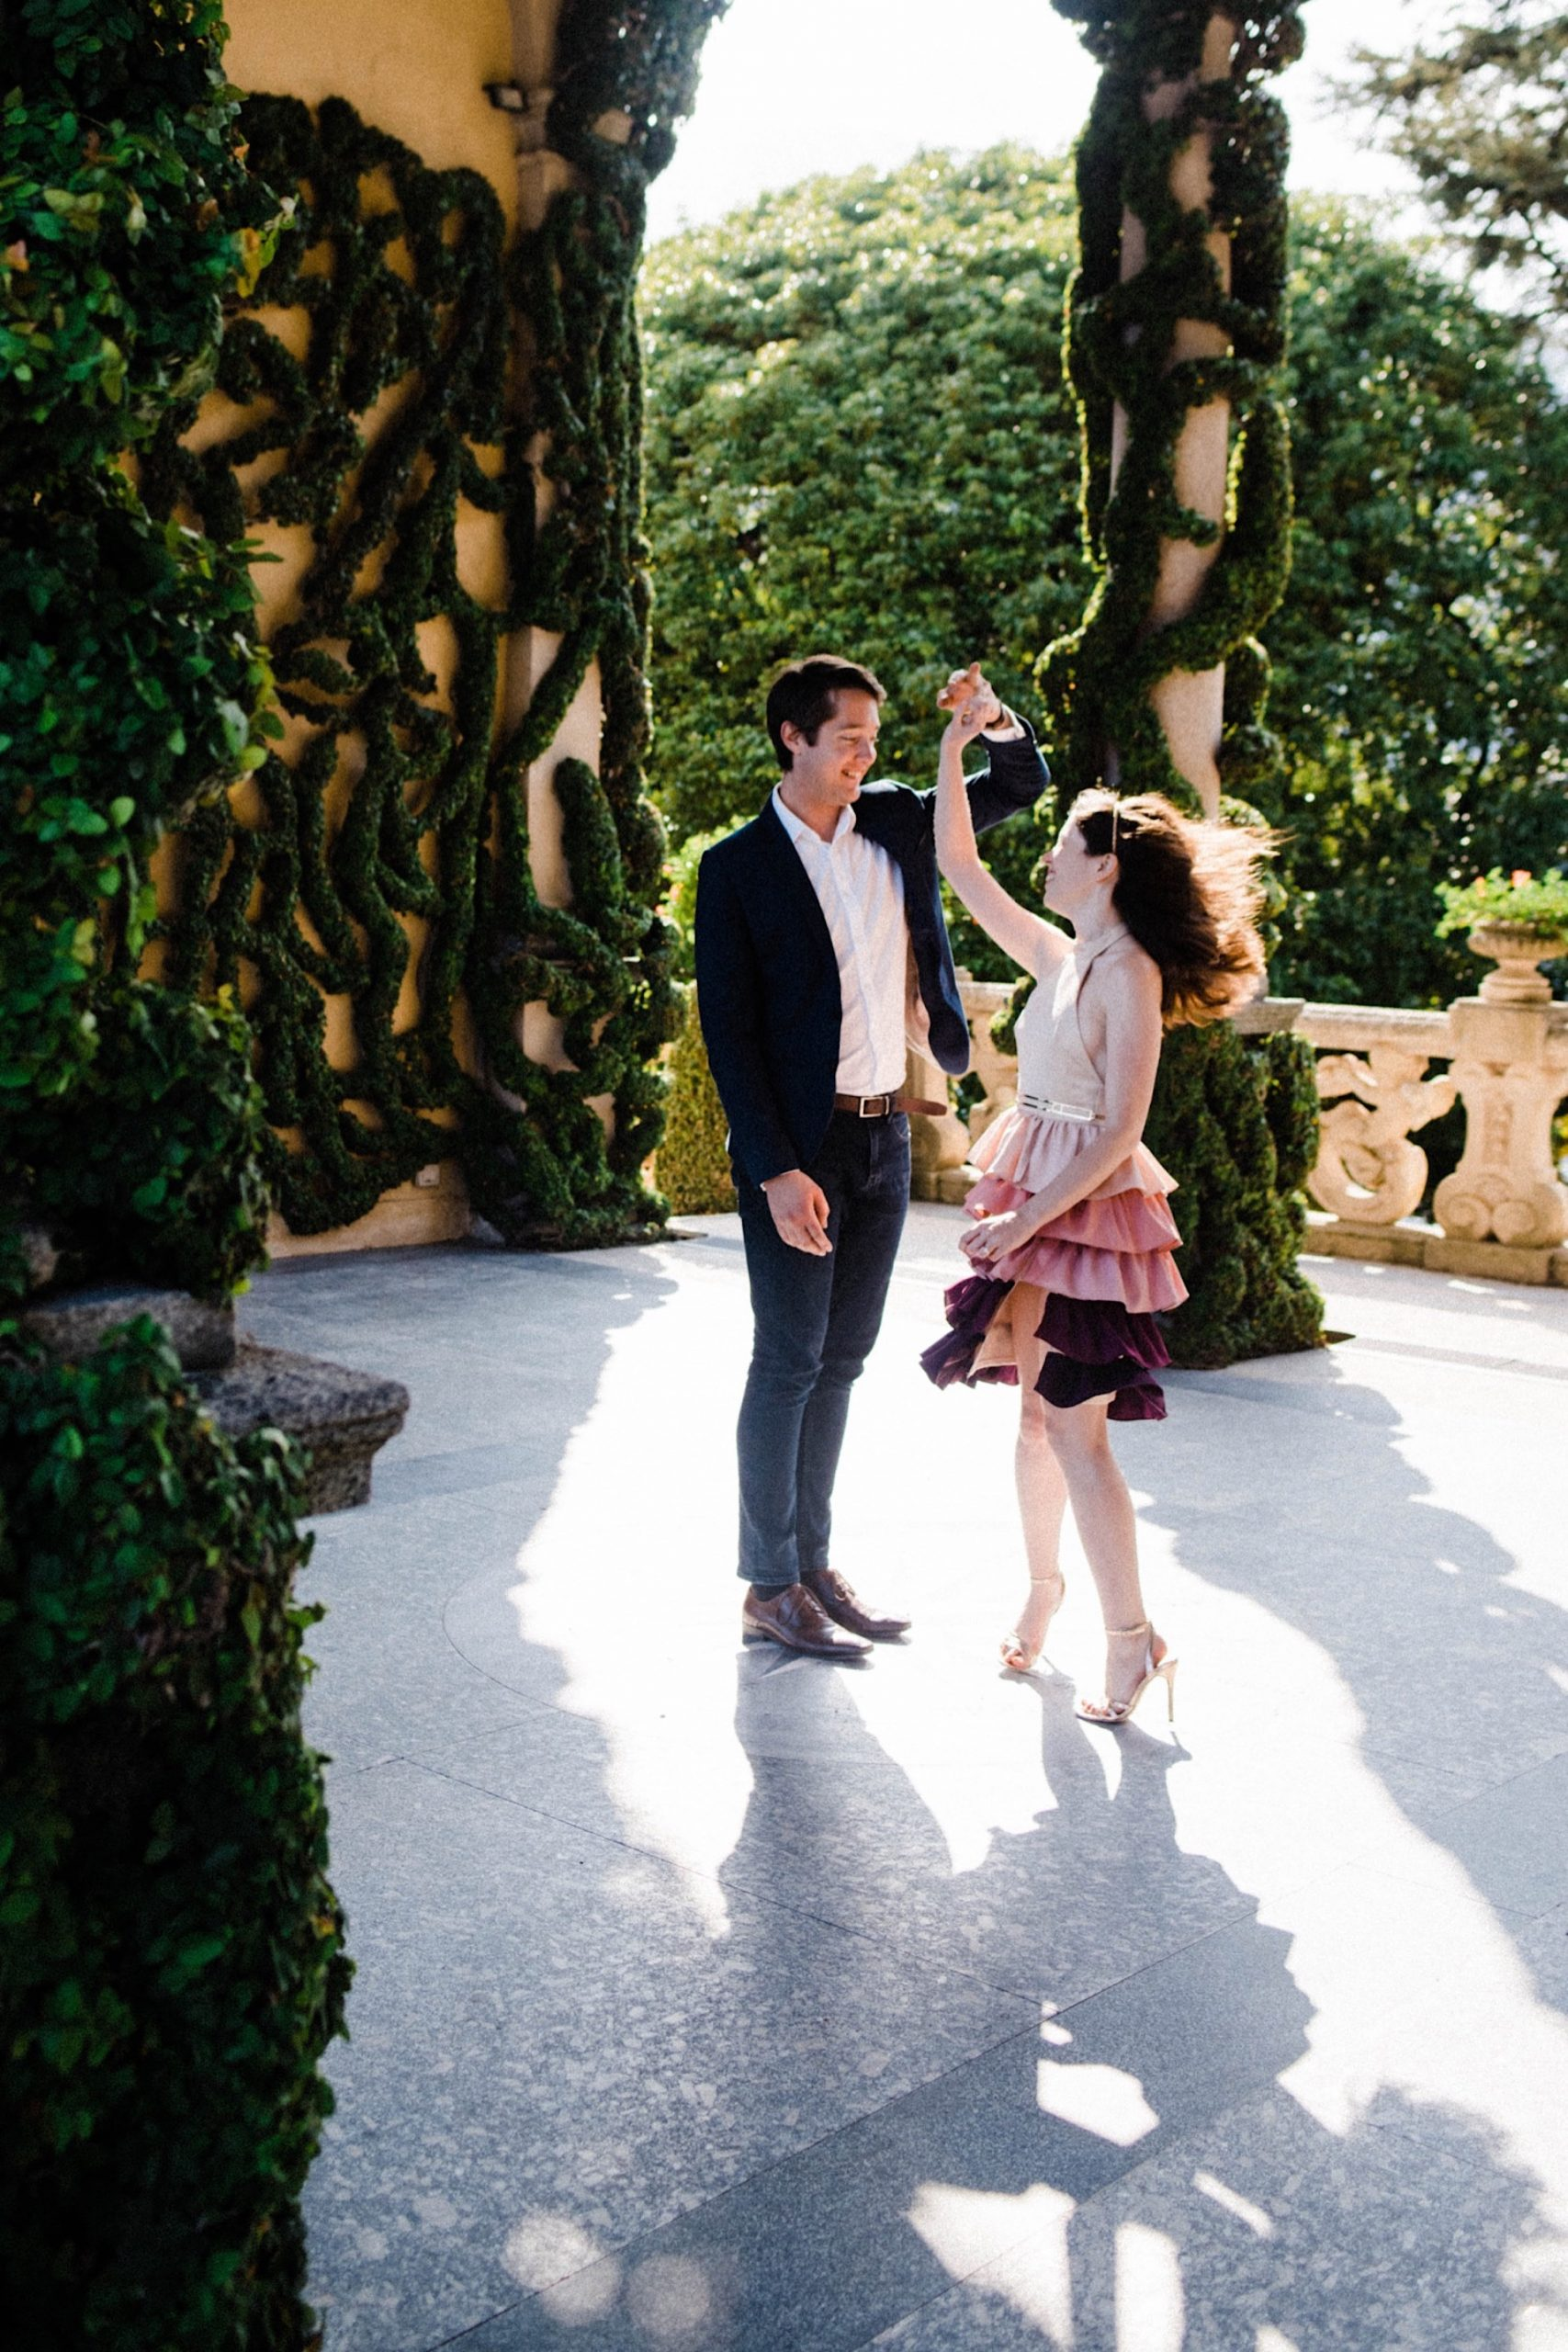 A romantic portrait photo of a couple dancing together in the centre of the main courtyard at Villa Balbianello in Lenno, on Lake Como.